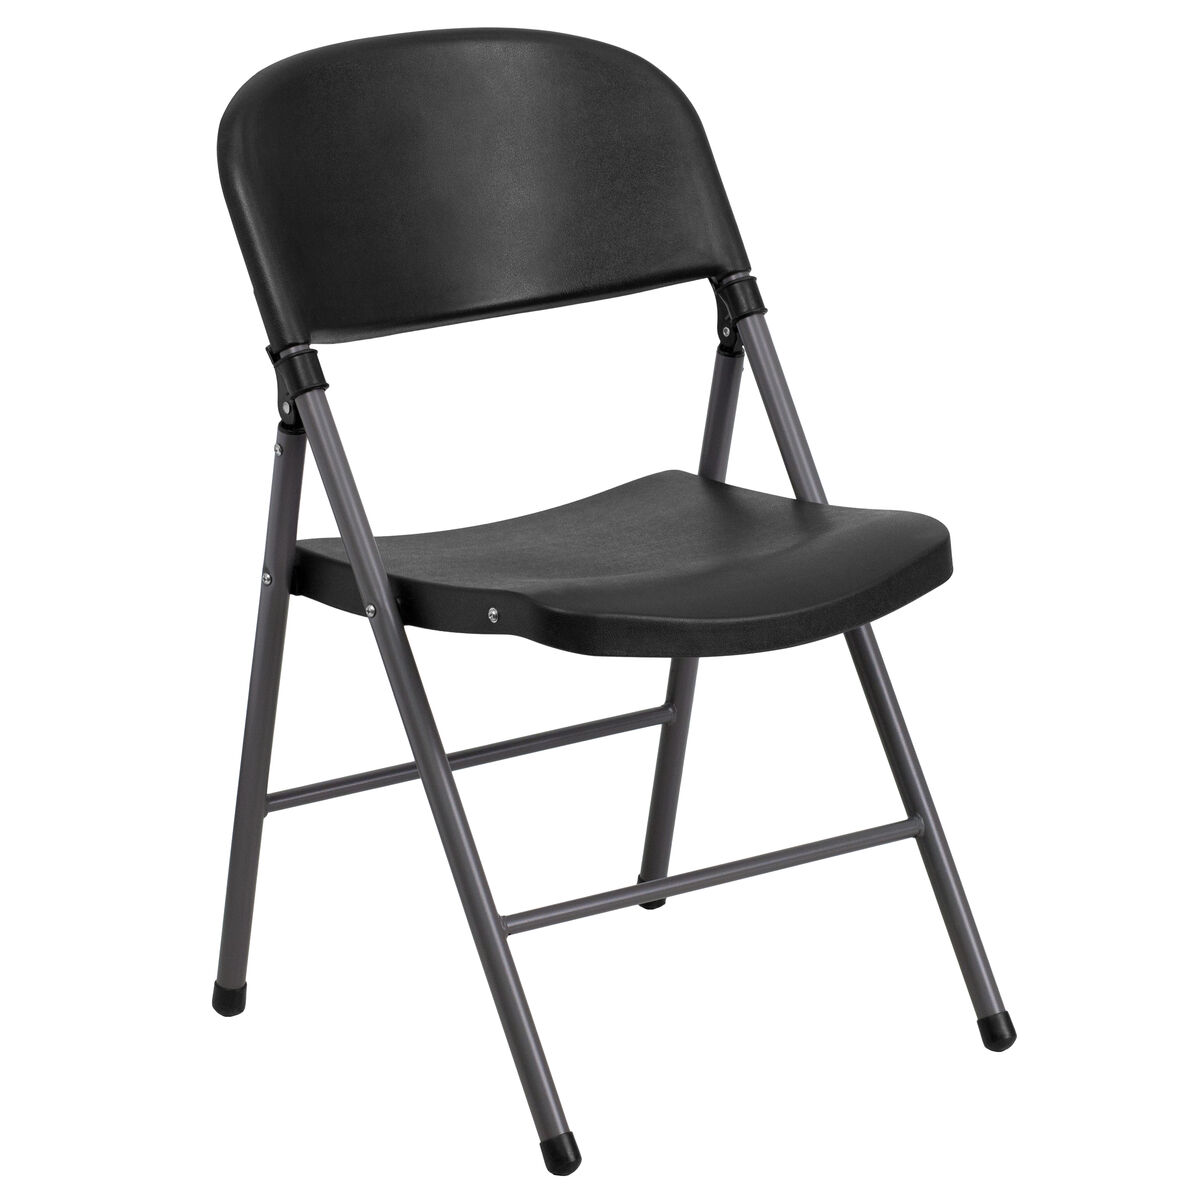 Black Plastic Folding Chair DAD-YCD-50-GG | FoldingChairs4Less.com